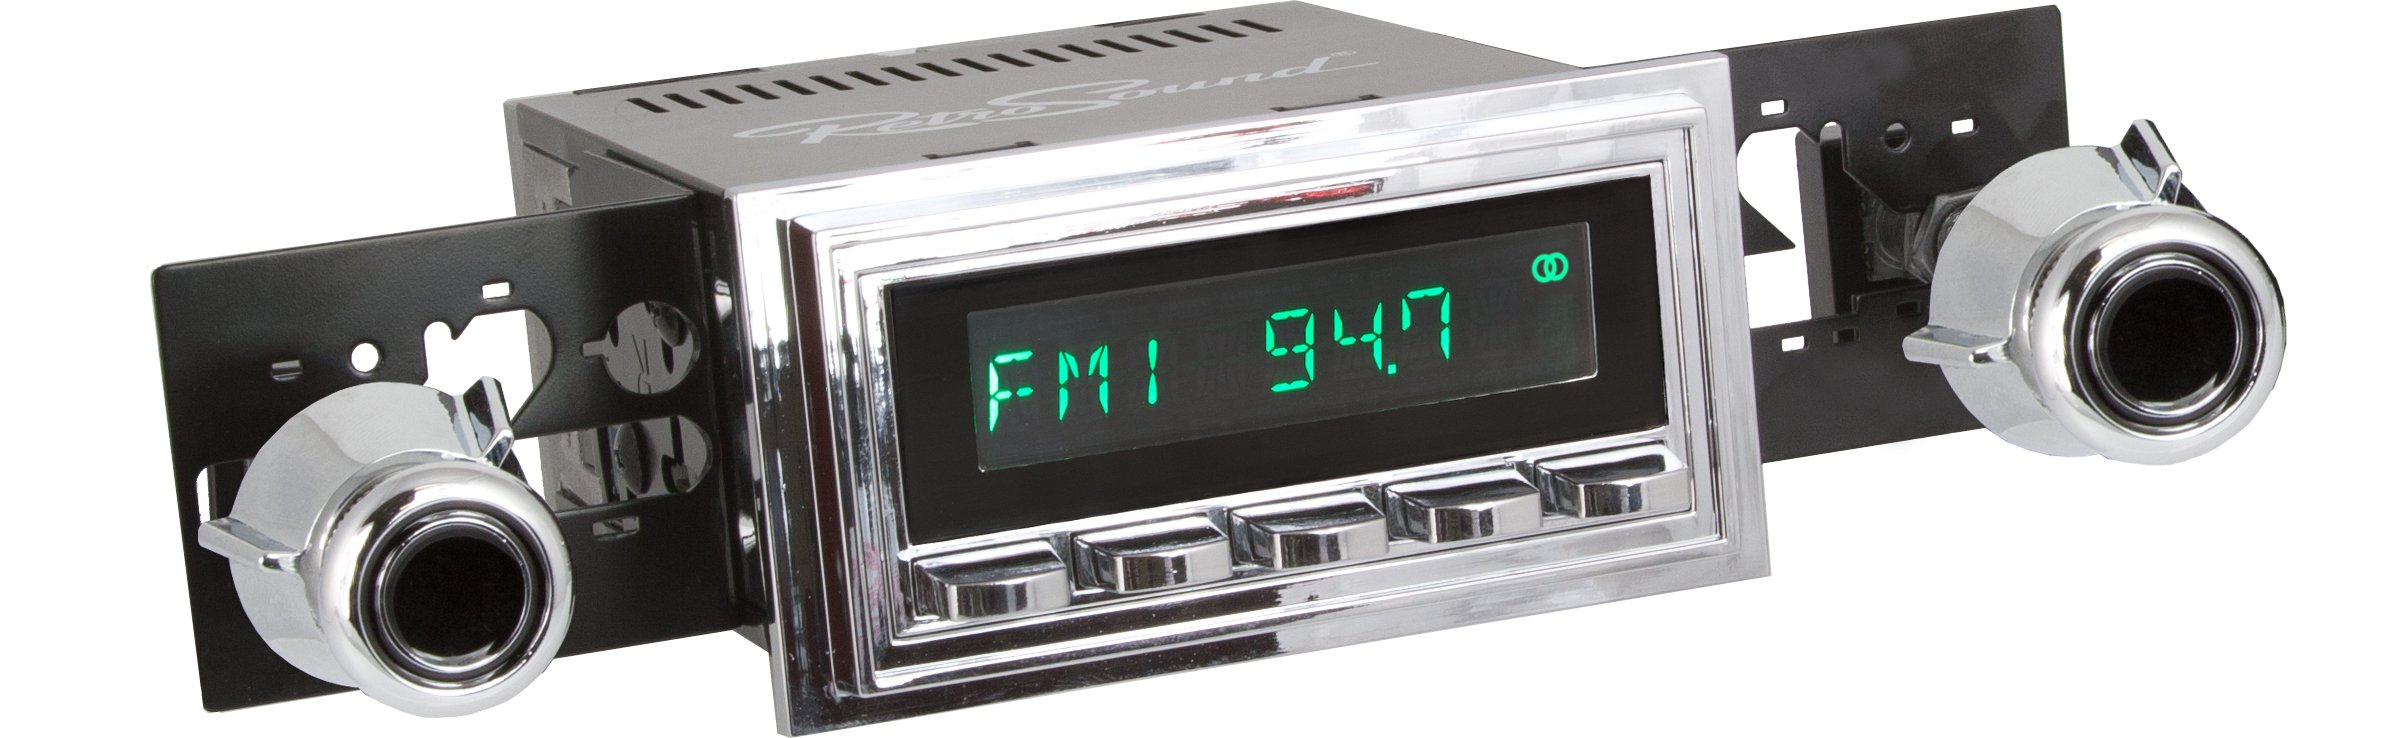 Retro Manufacturing LAC-126-55-75 Radio for Classic Vehicles by Retro Manufacturing